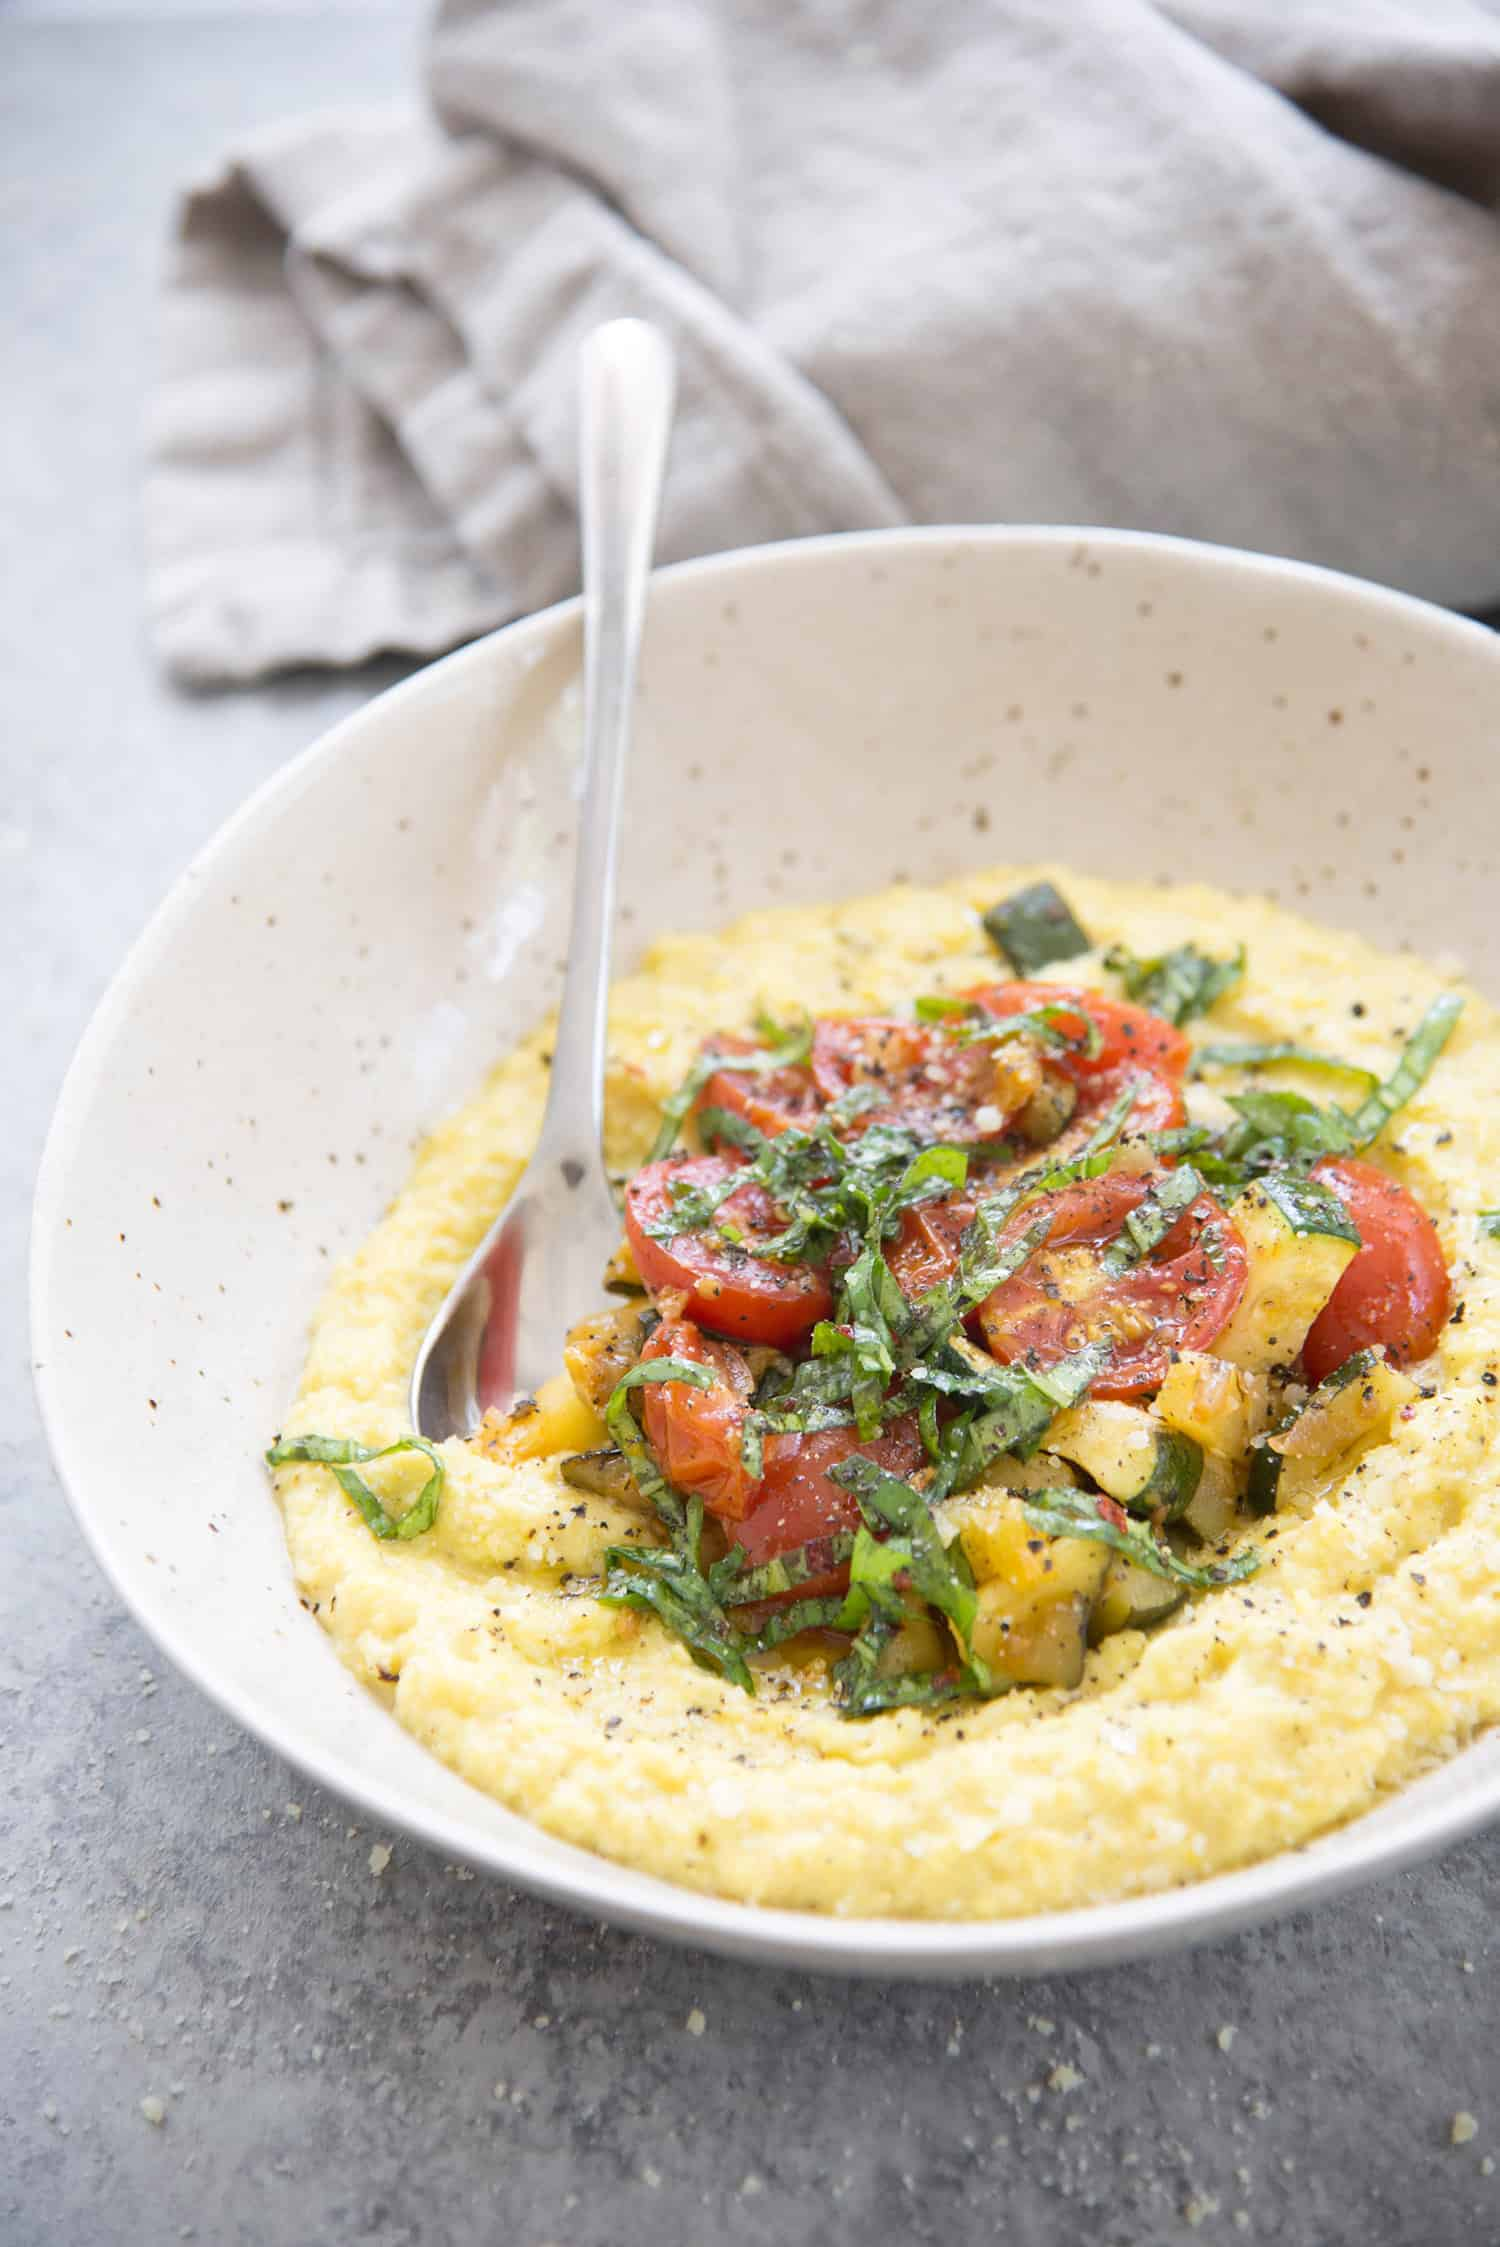 Fresh Corn Polenta with Farm Vegetables and Spicy Basil Oil. The vegan and gluten-free dinner is perfect for summer! Make the most of farmer's market produce; fresh corn polenta topped with sauteed farm vegetables and a drizzle of spicy basil oil. | www.delishknowledge.com